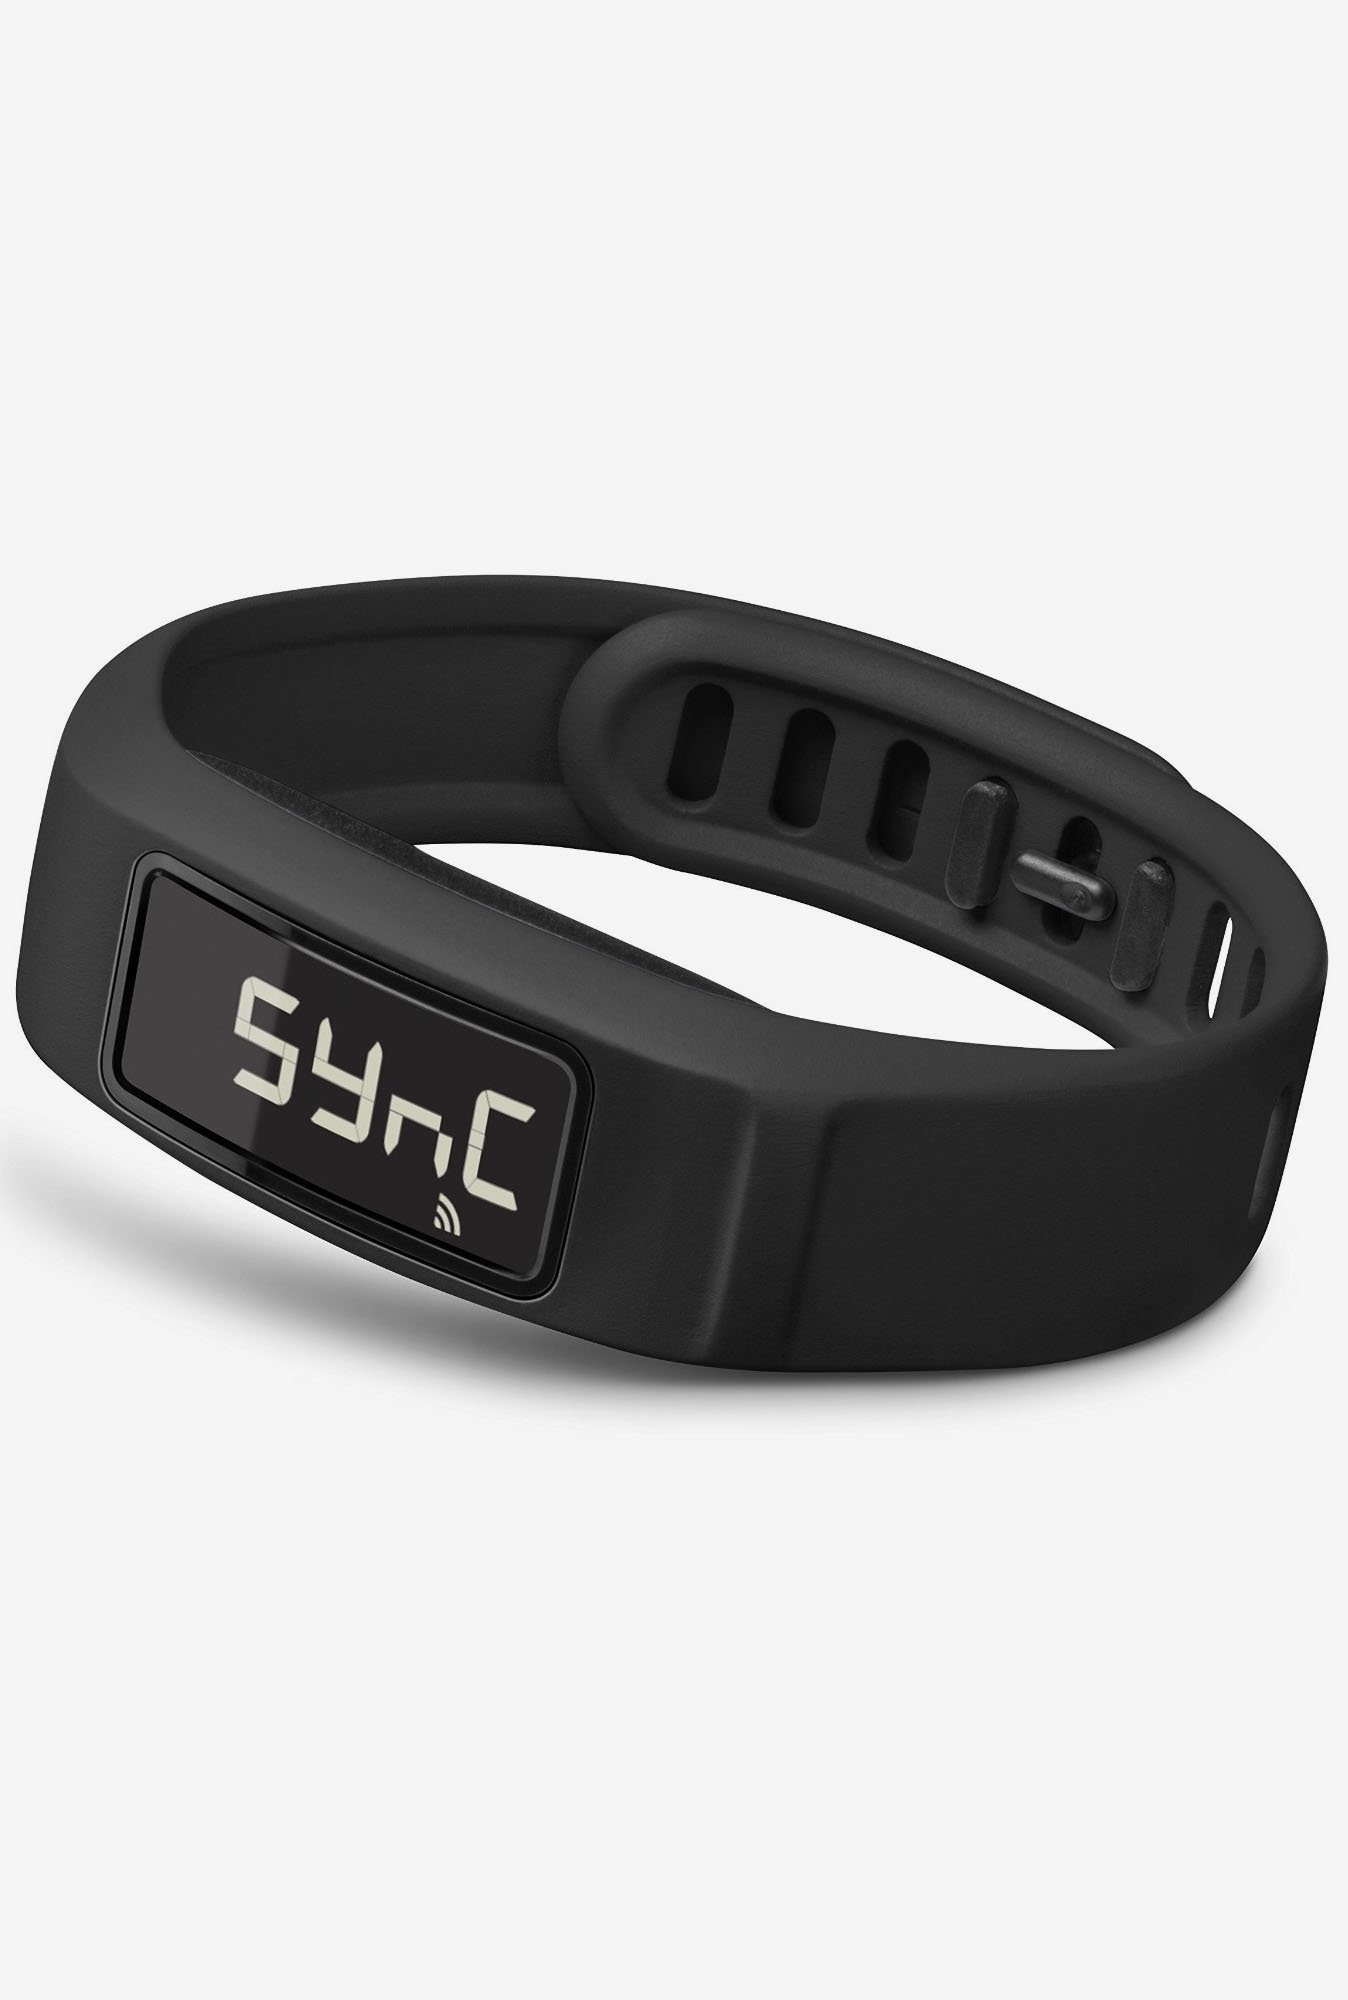 Garmin VivoFit2 Fitness Tracker (Black)